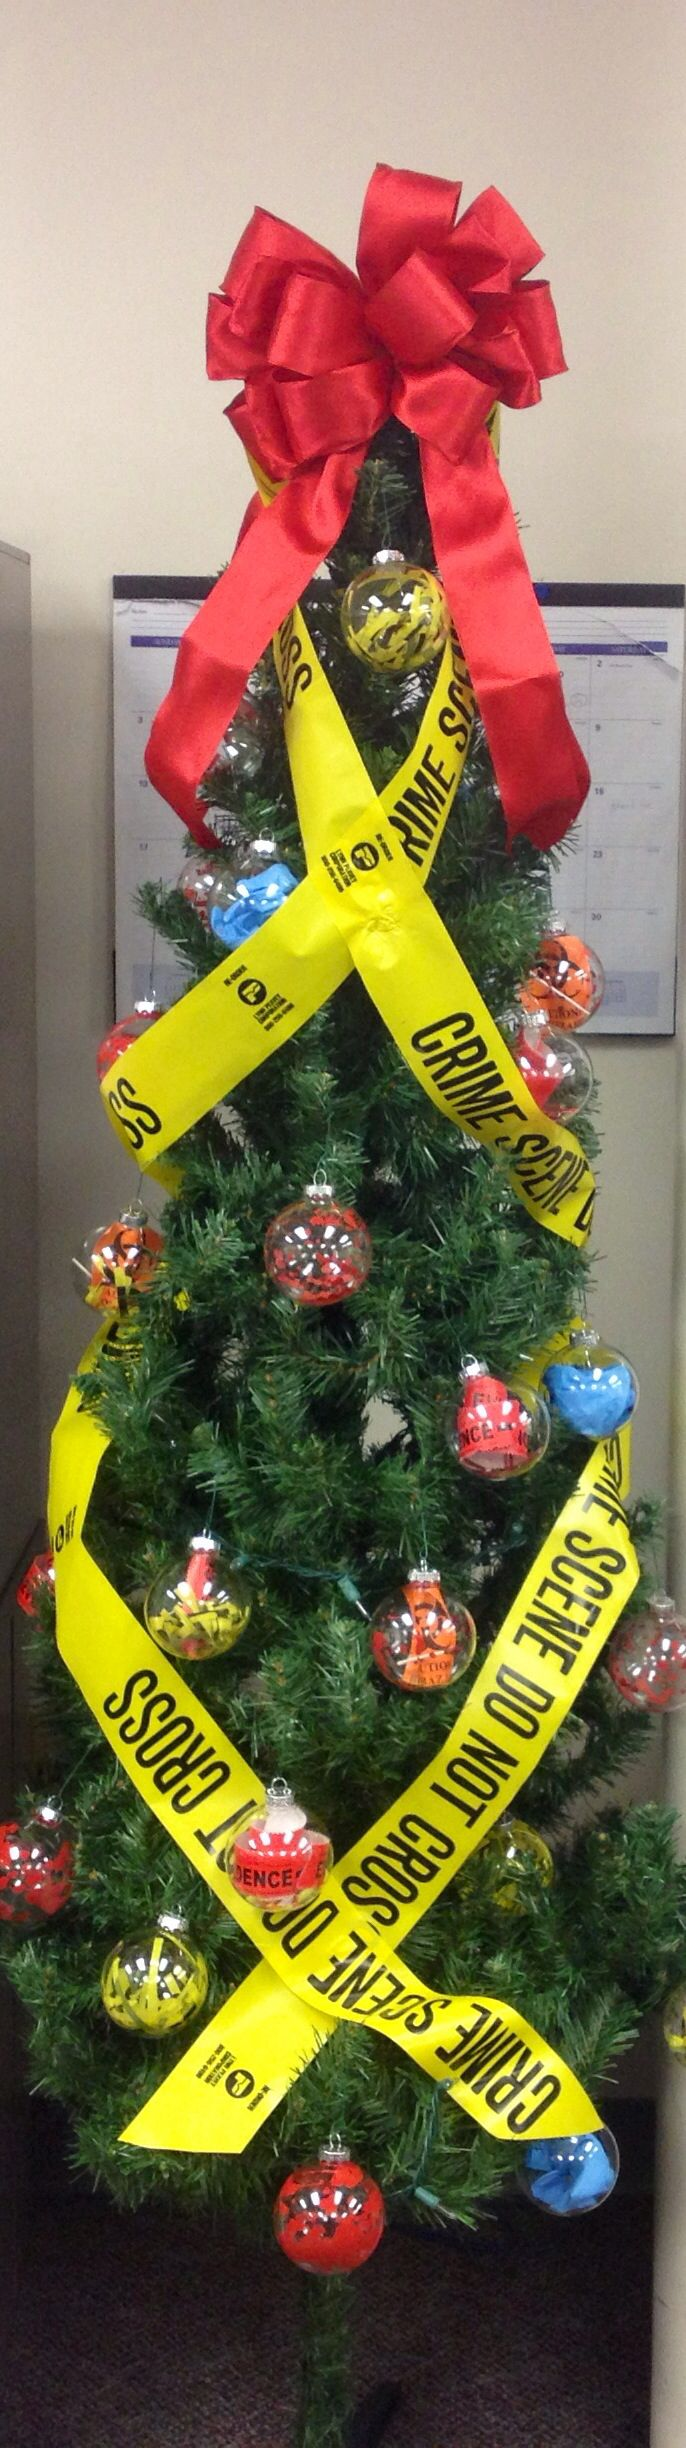 82 best Forensic Fun images on Pinterest | Crime scenes, Tape and ...